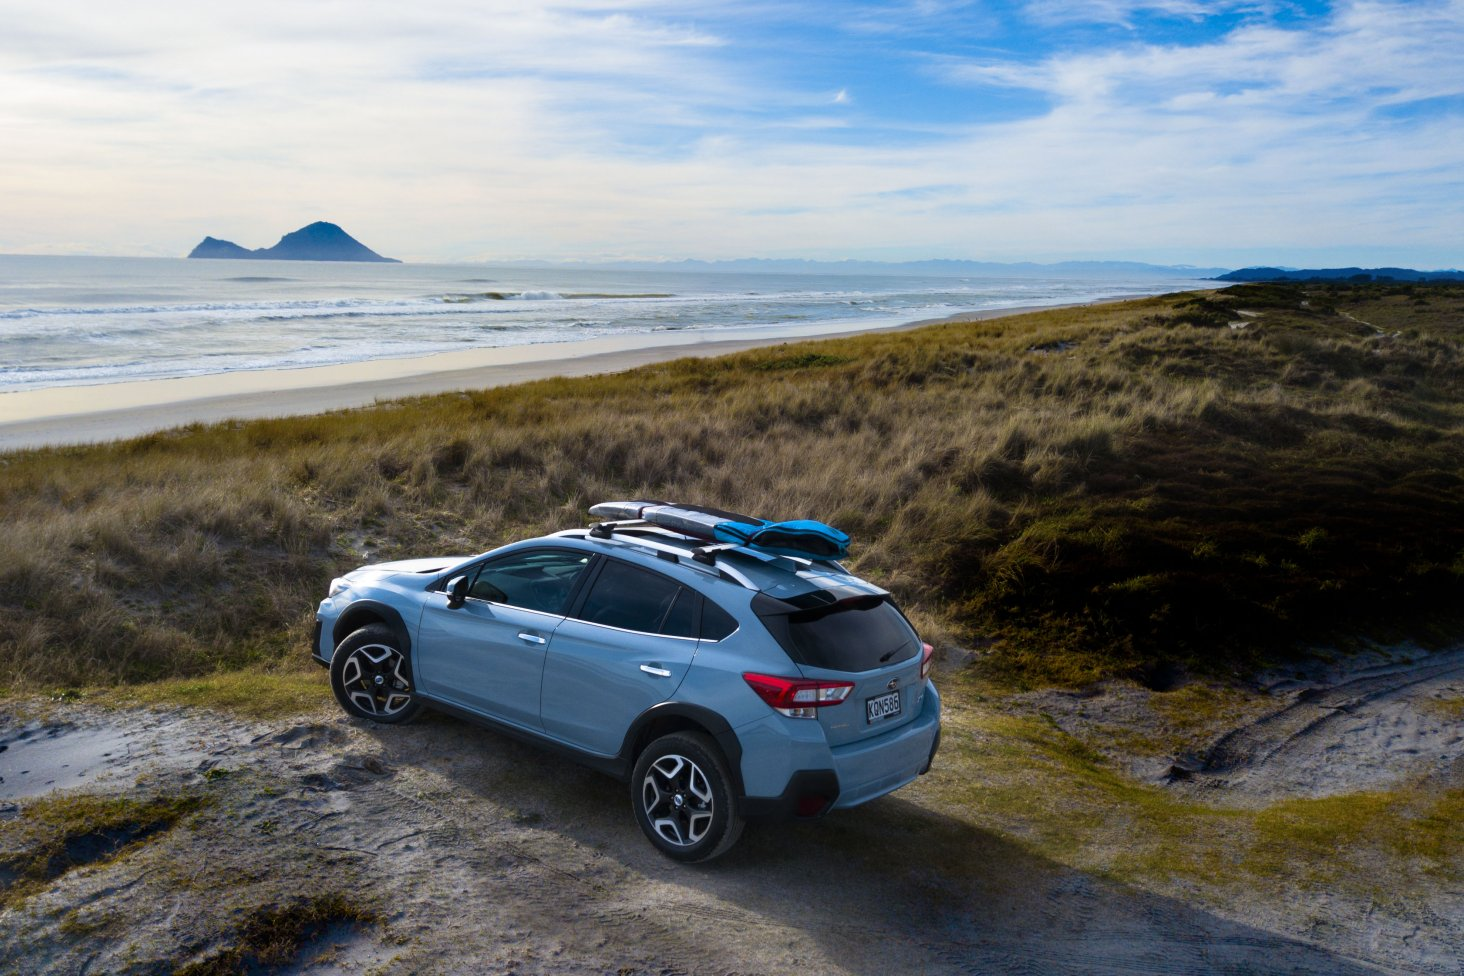 The 2018 Subaru XV is NZ Company Vehicle Magazine's Compact SUV of the Year.